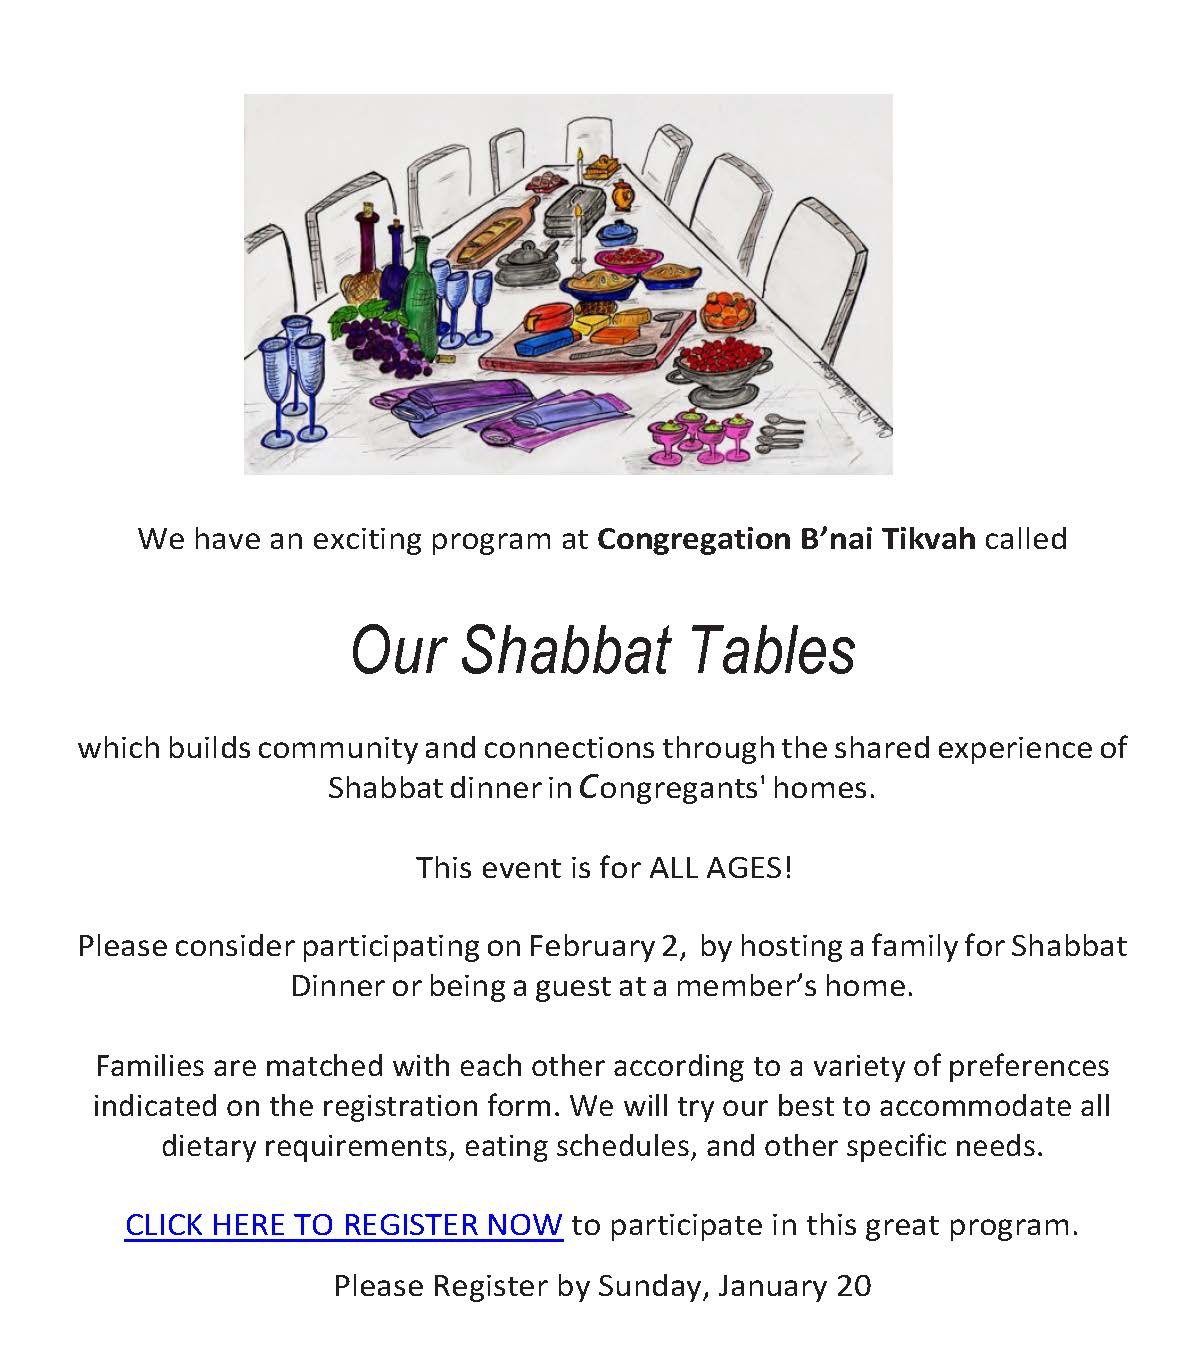 Our Shabbat Tables - February 2